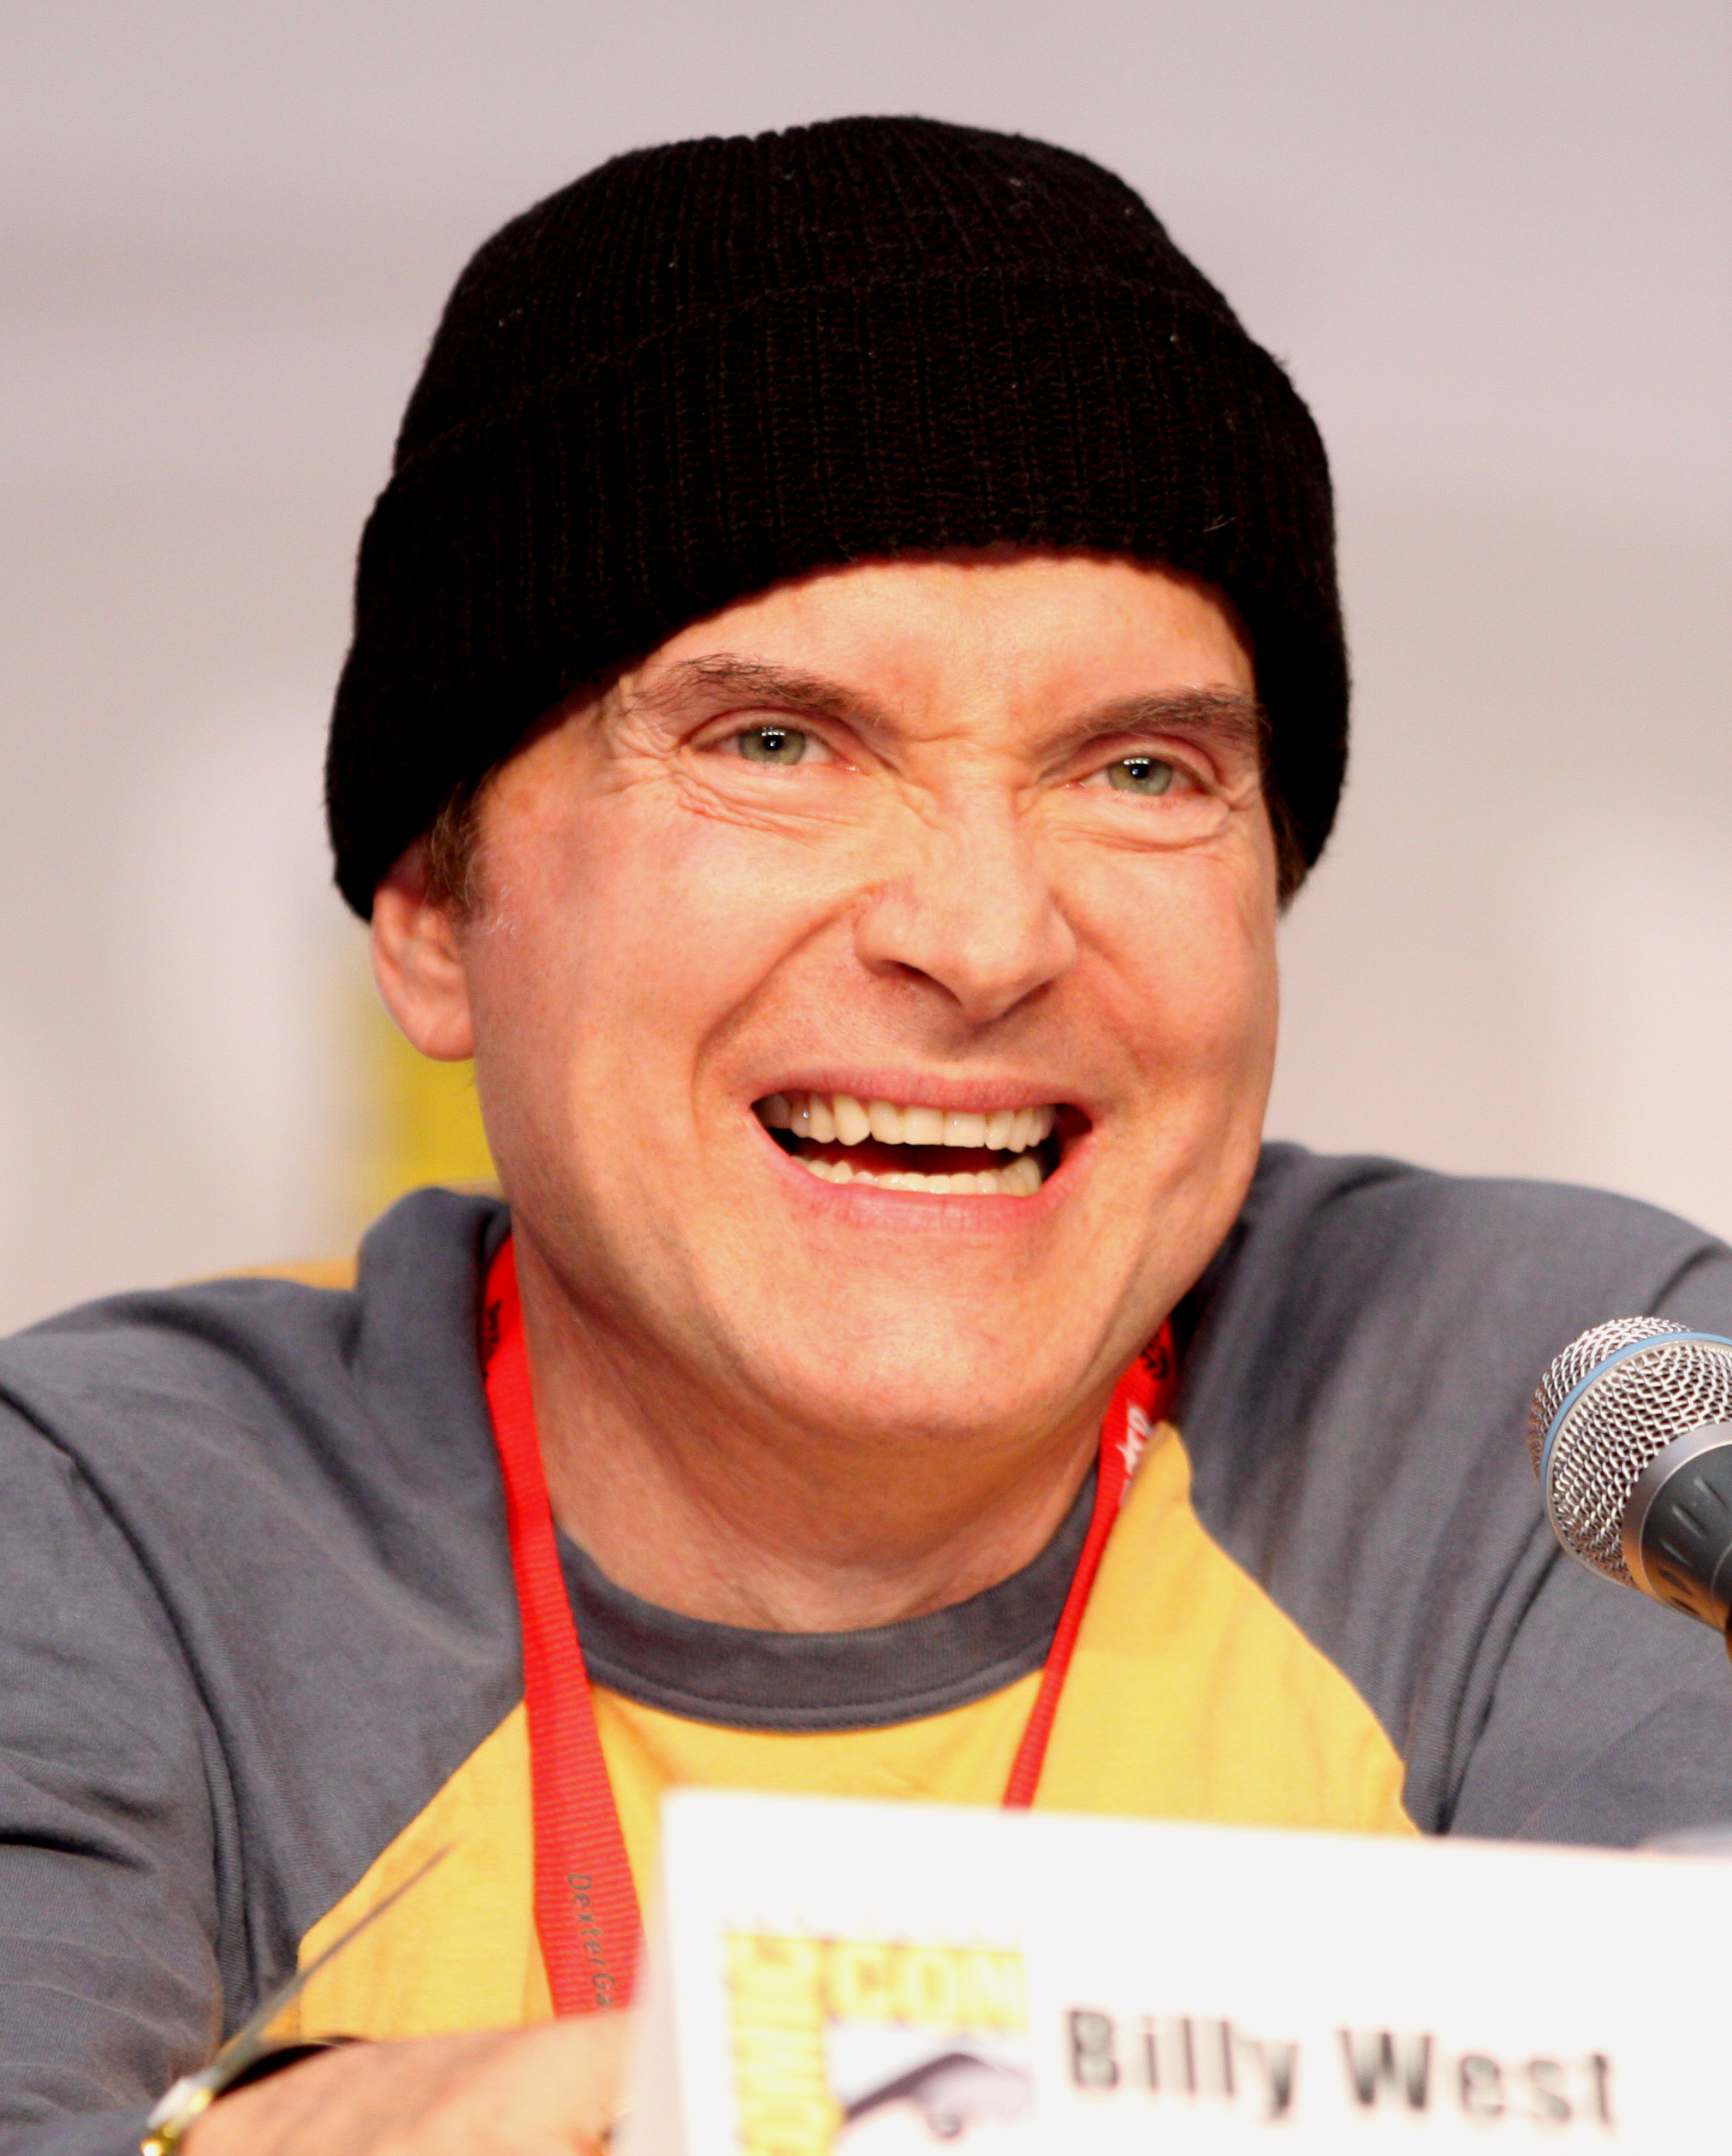 billy west wikipediabilly west guitar, billy west podcast, billy west adventure time, billy west howard stern, billy west fry, billy west futurama, billy west world, billy west woody woodpecker, billy west music, billy west wikipedia, billy west, billy west voices, billy west imdb, billy west wiki, billy west futurama voices, billy west twitter, billy west zoidberg, billy west youtube, billy west zoidberg youtube, billy west invader zim